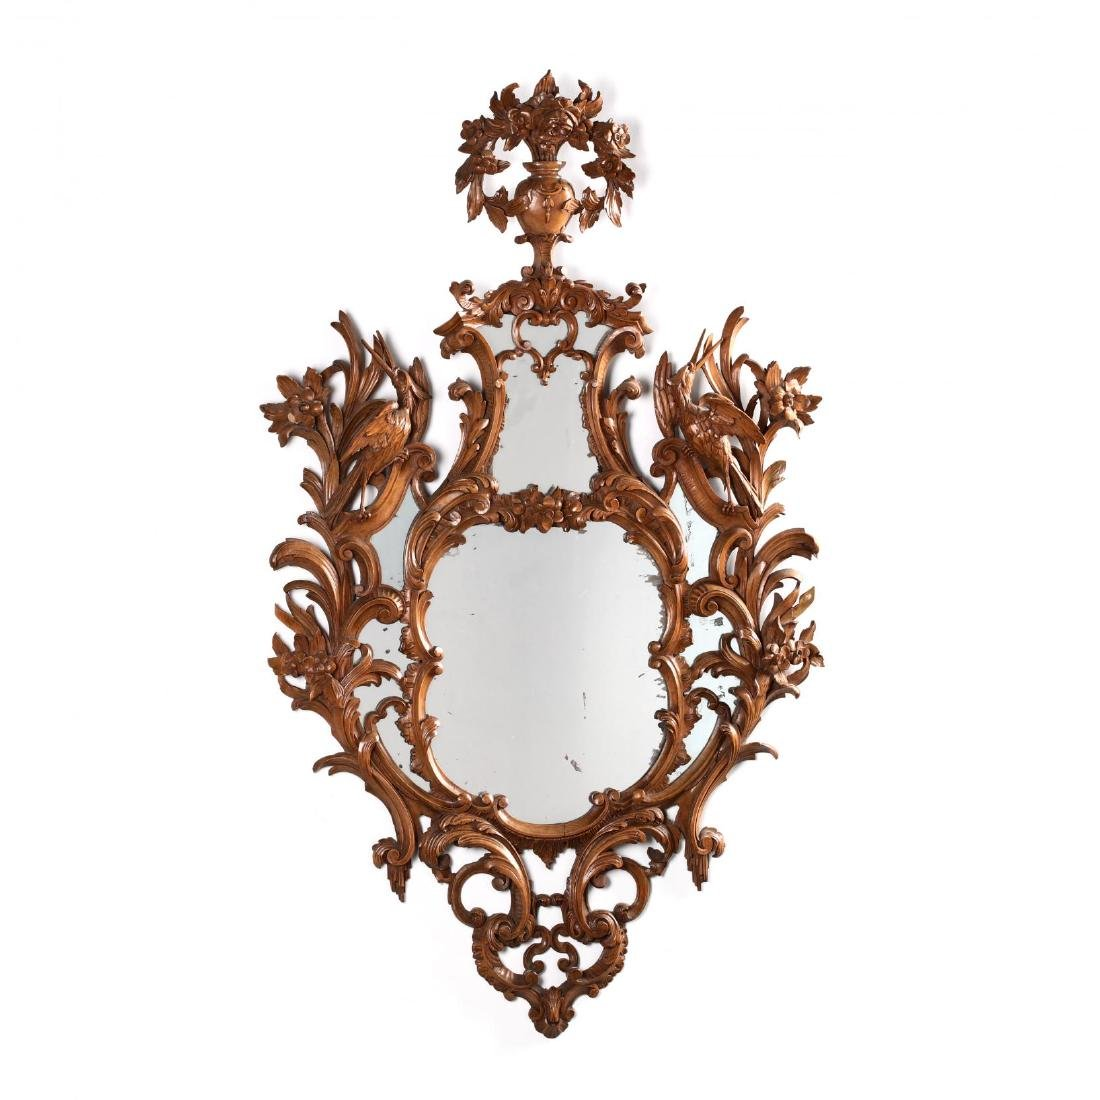 Pair of Italian Rococo Style Carved Wood Mirrors - 2